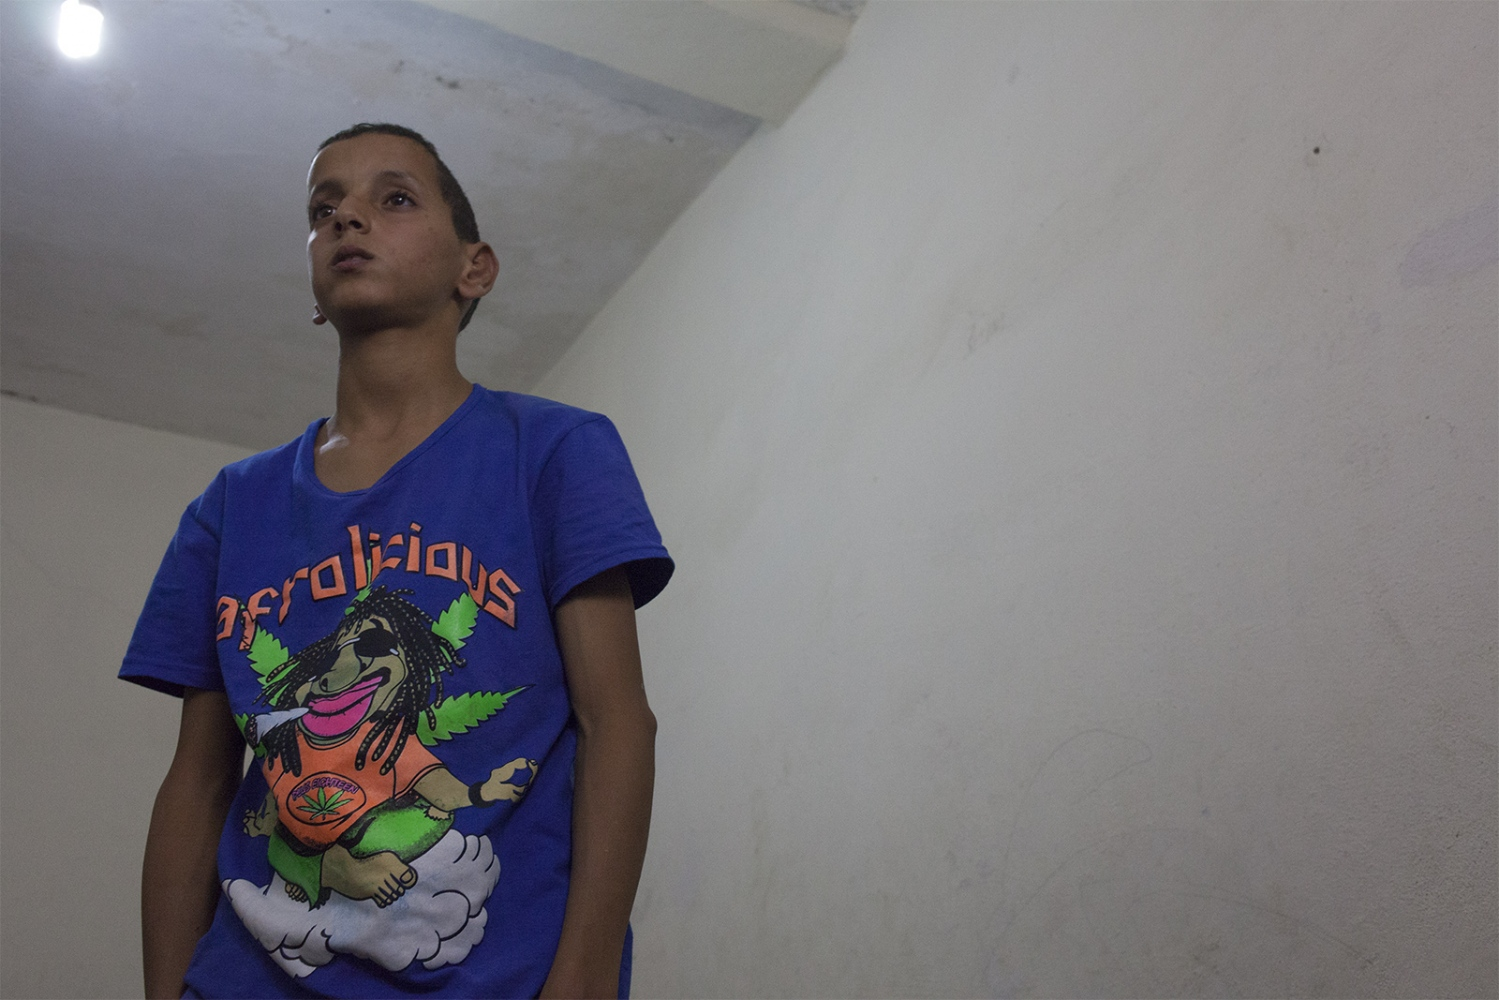 Achif (13). He was arrested after a demonstration and taken out in to the desert where he was beaten and threatened with rape by the Moroccan police. They tried to force him to be one of their informants, but he refused. He was thrown out of school the day after, and has no possibility to finish his education.